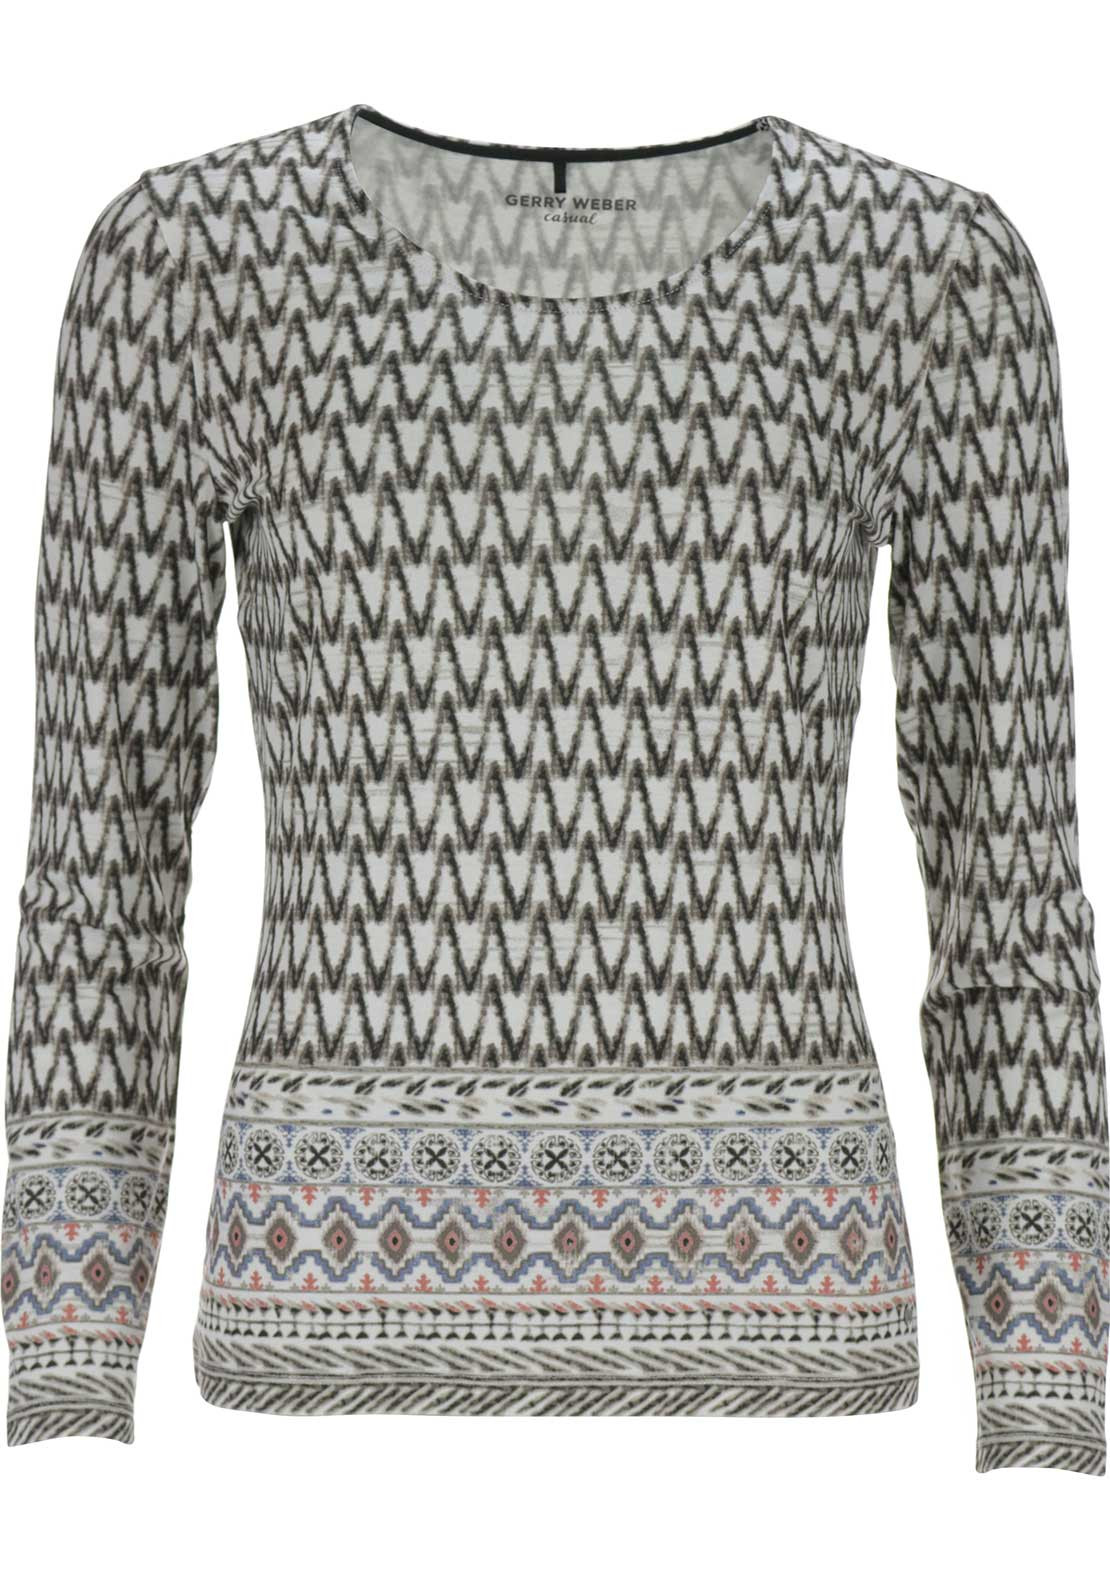 Gerry Weber Zig Zag Top, Multi-coloured